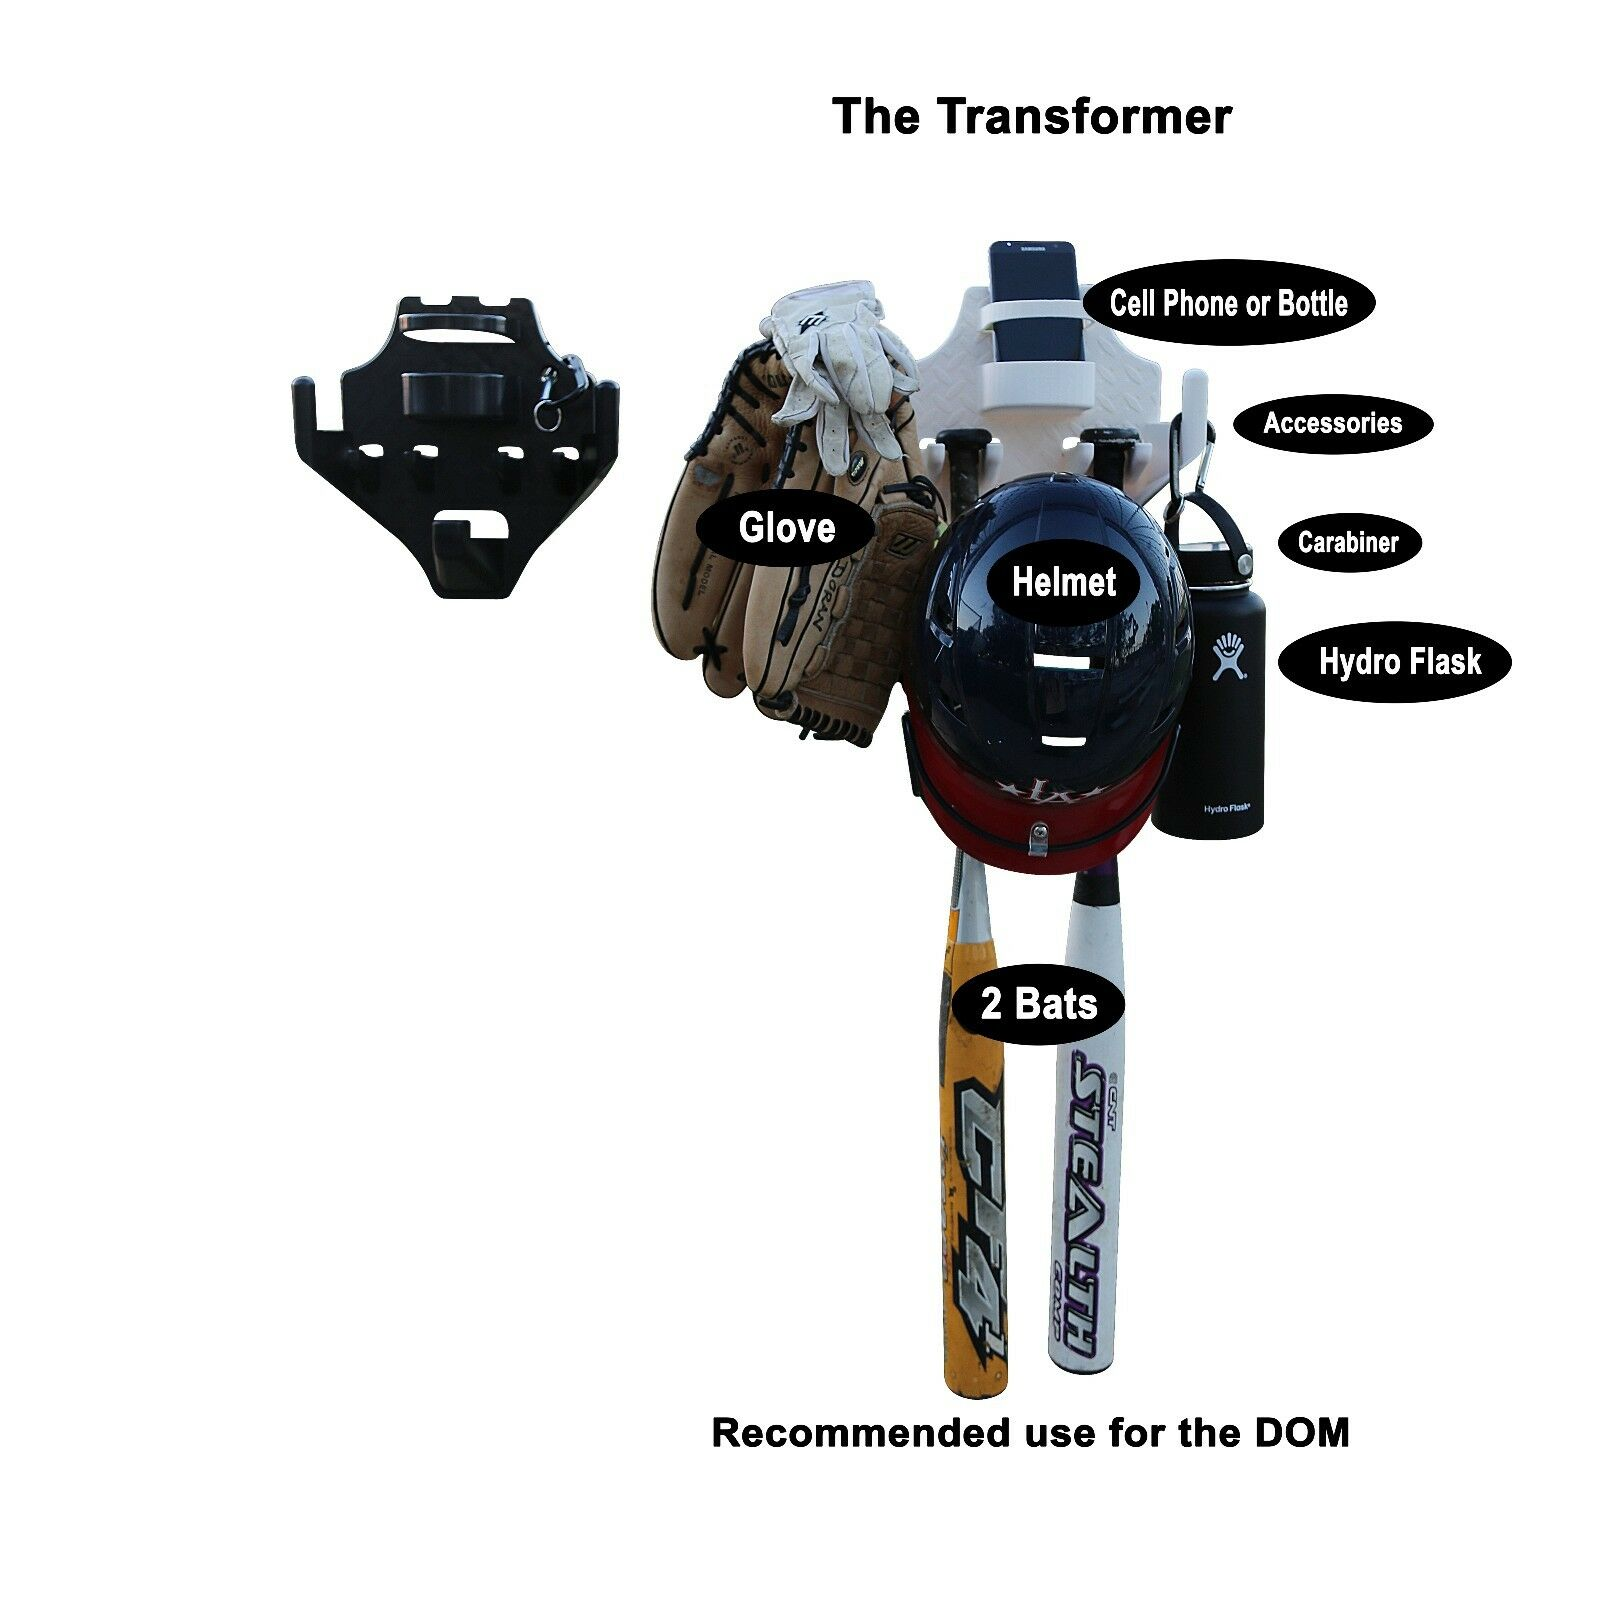 SOFTBALL BASEBALL BAT HELMET GLOVE HOLDER THE TRANSFORMER DOM TRANSFORMER THE ( 11 count ) ce5bb4